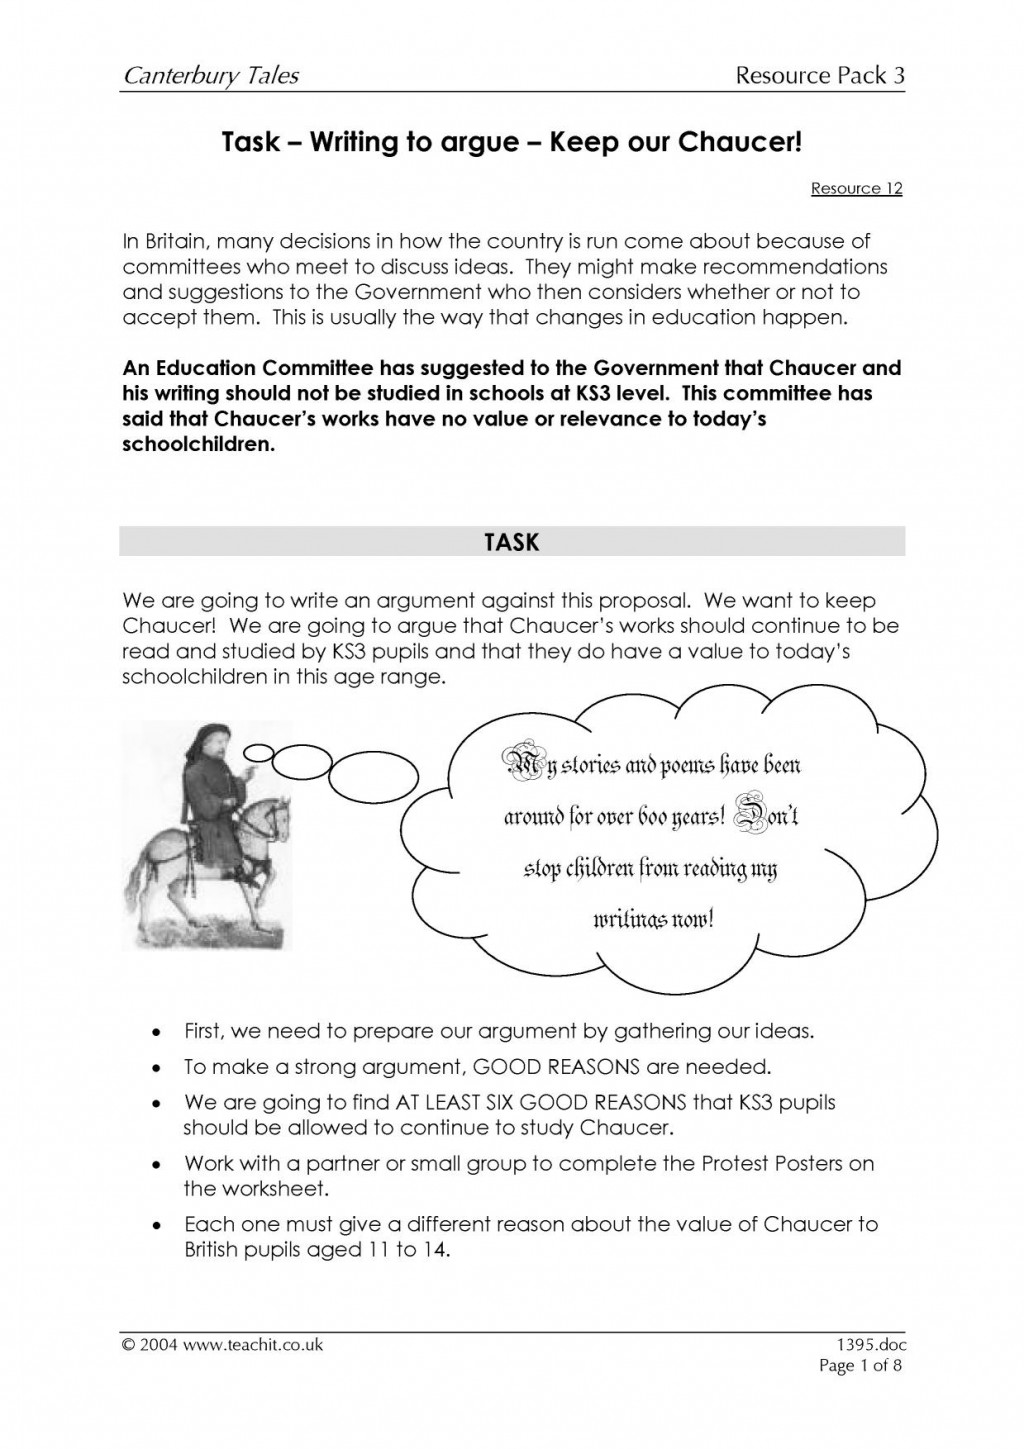 014 Canterbury Tales Essay Topics Best Images20ologue Questions20 Questions For Research Remarkable Paper Defense Good Interview Large